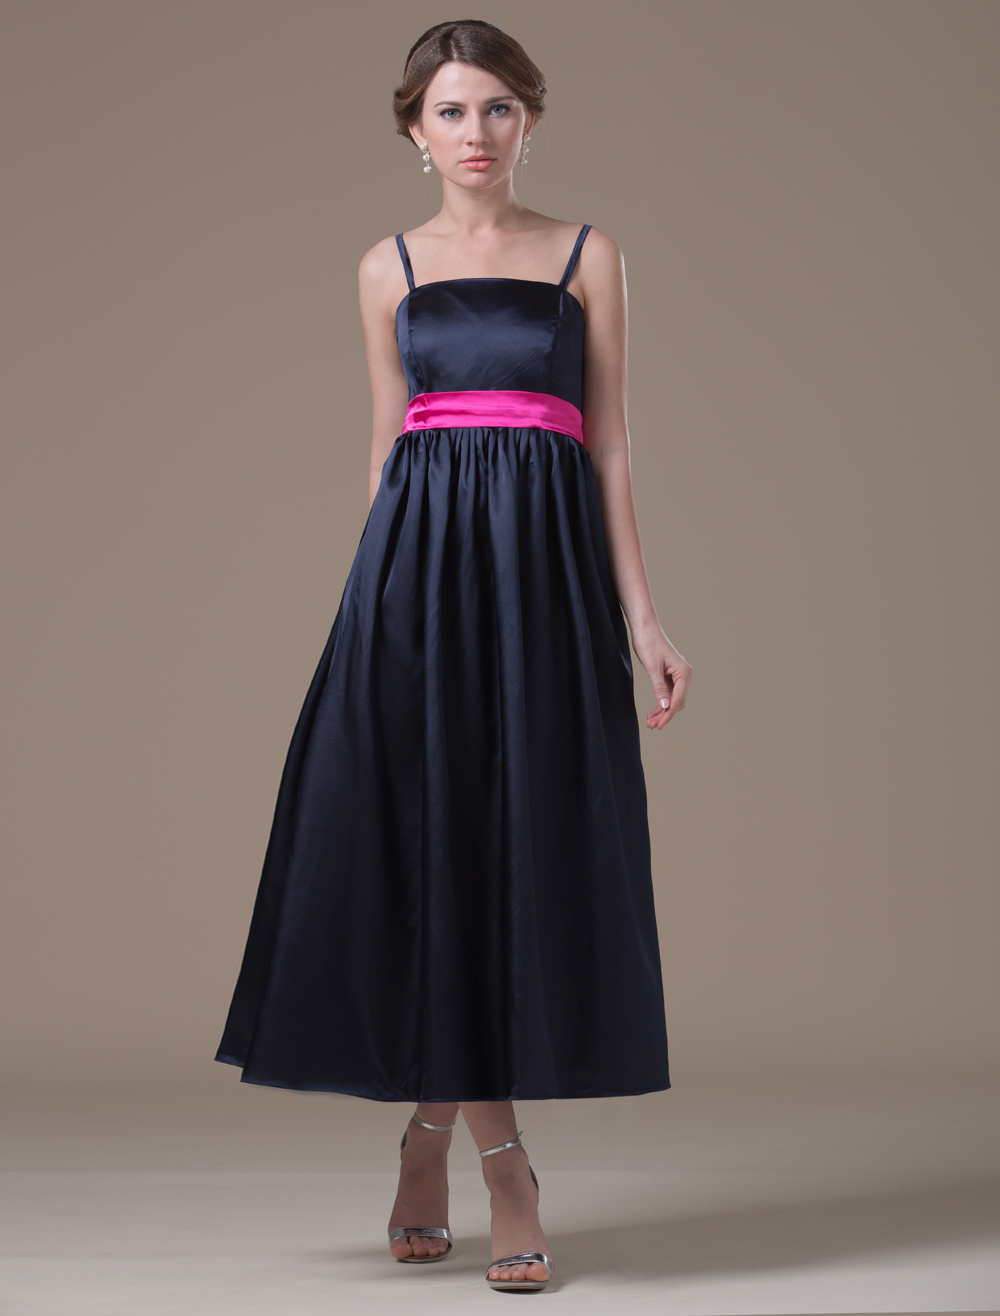 Buy A-line Black Elastic Woven Satin Maternity Bridesmaid Dress with Spaghetti Straps Empire Waist for $102.59 in Milanoo store